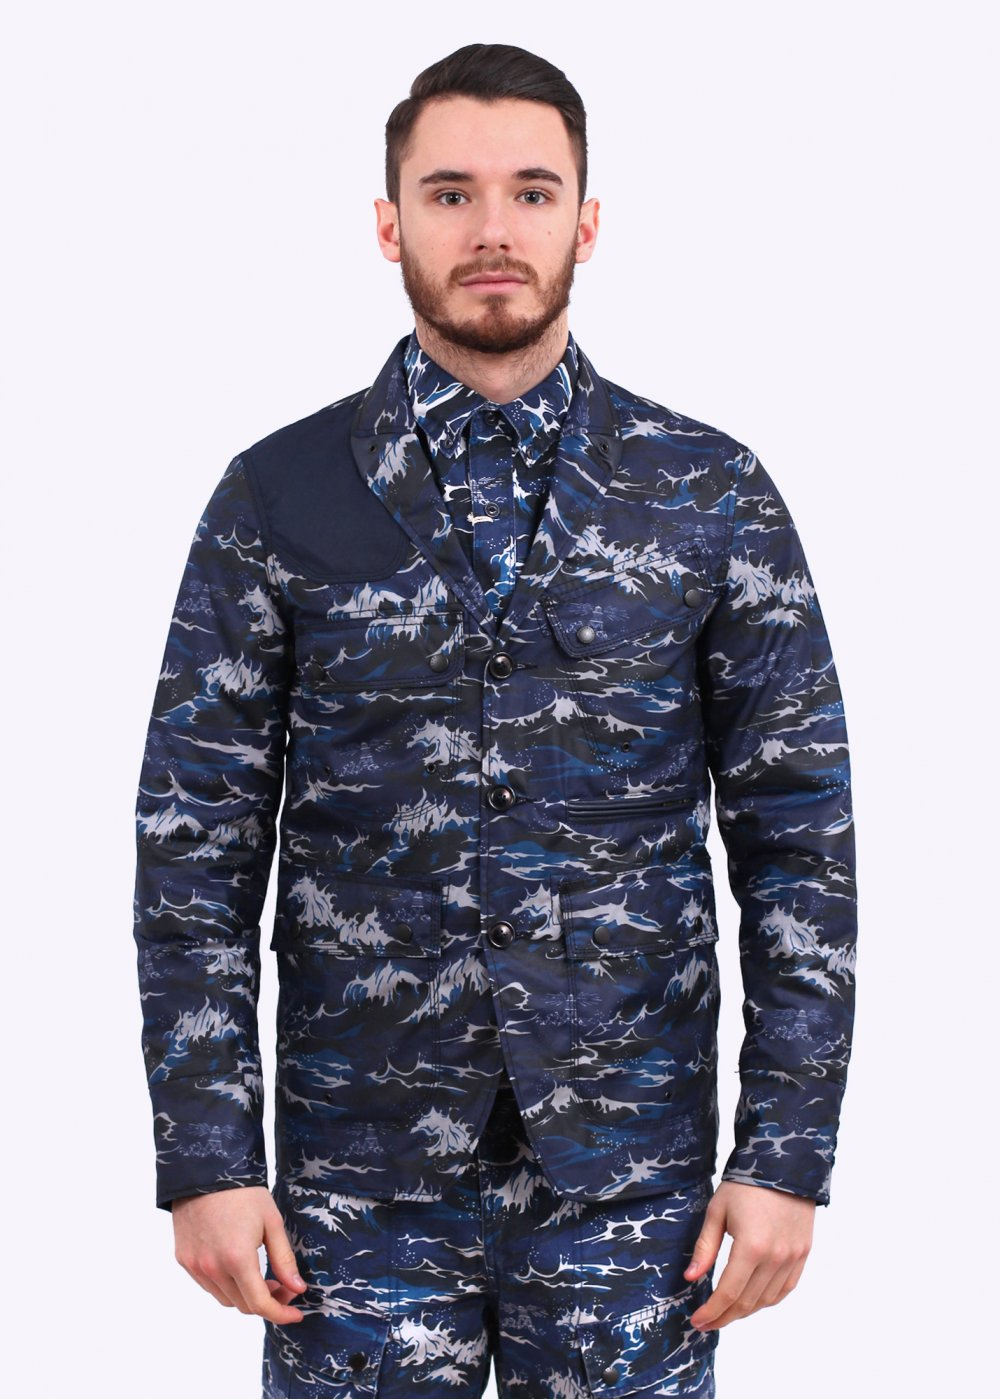 2bcadb5ec836 Barbour x White Mountaineering Wave Lapel Jacket - Navy Wave Print